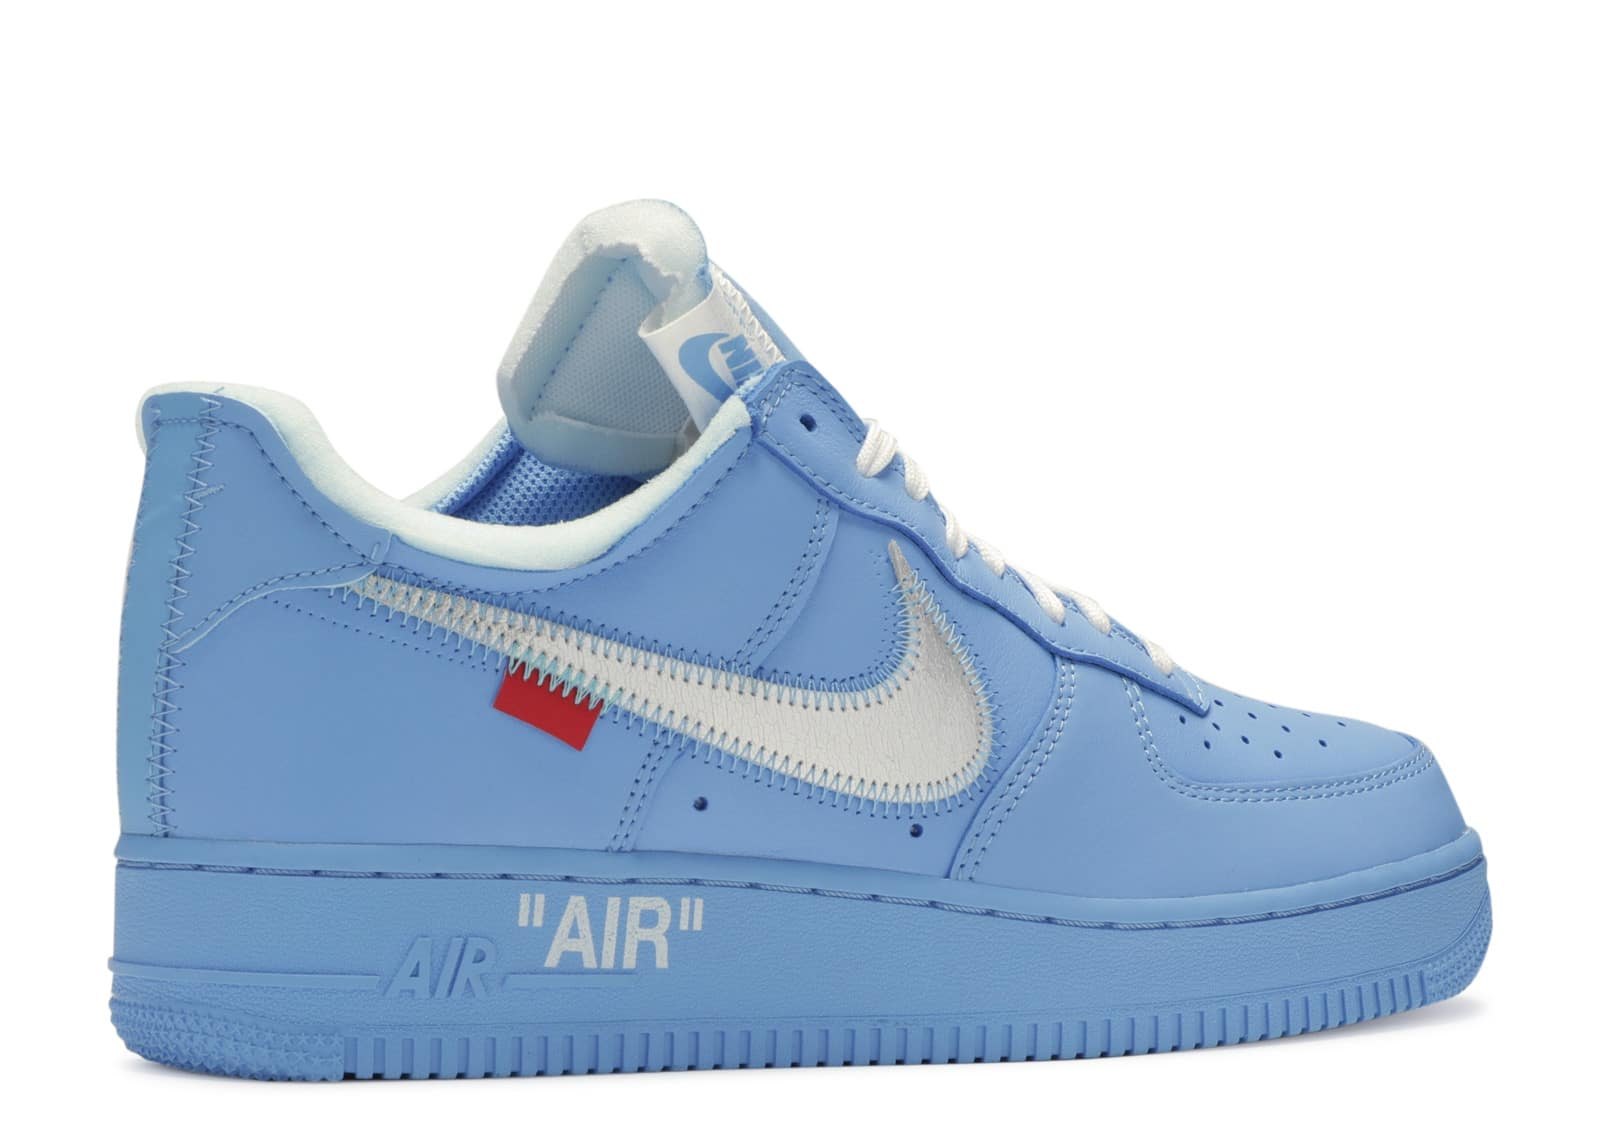 Nike Footwear Air Force 1 07 White University Blue